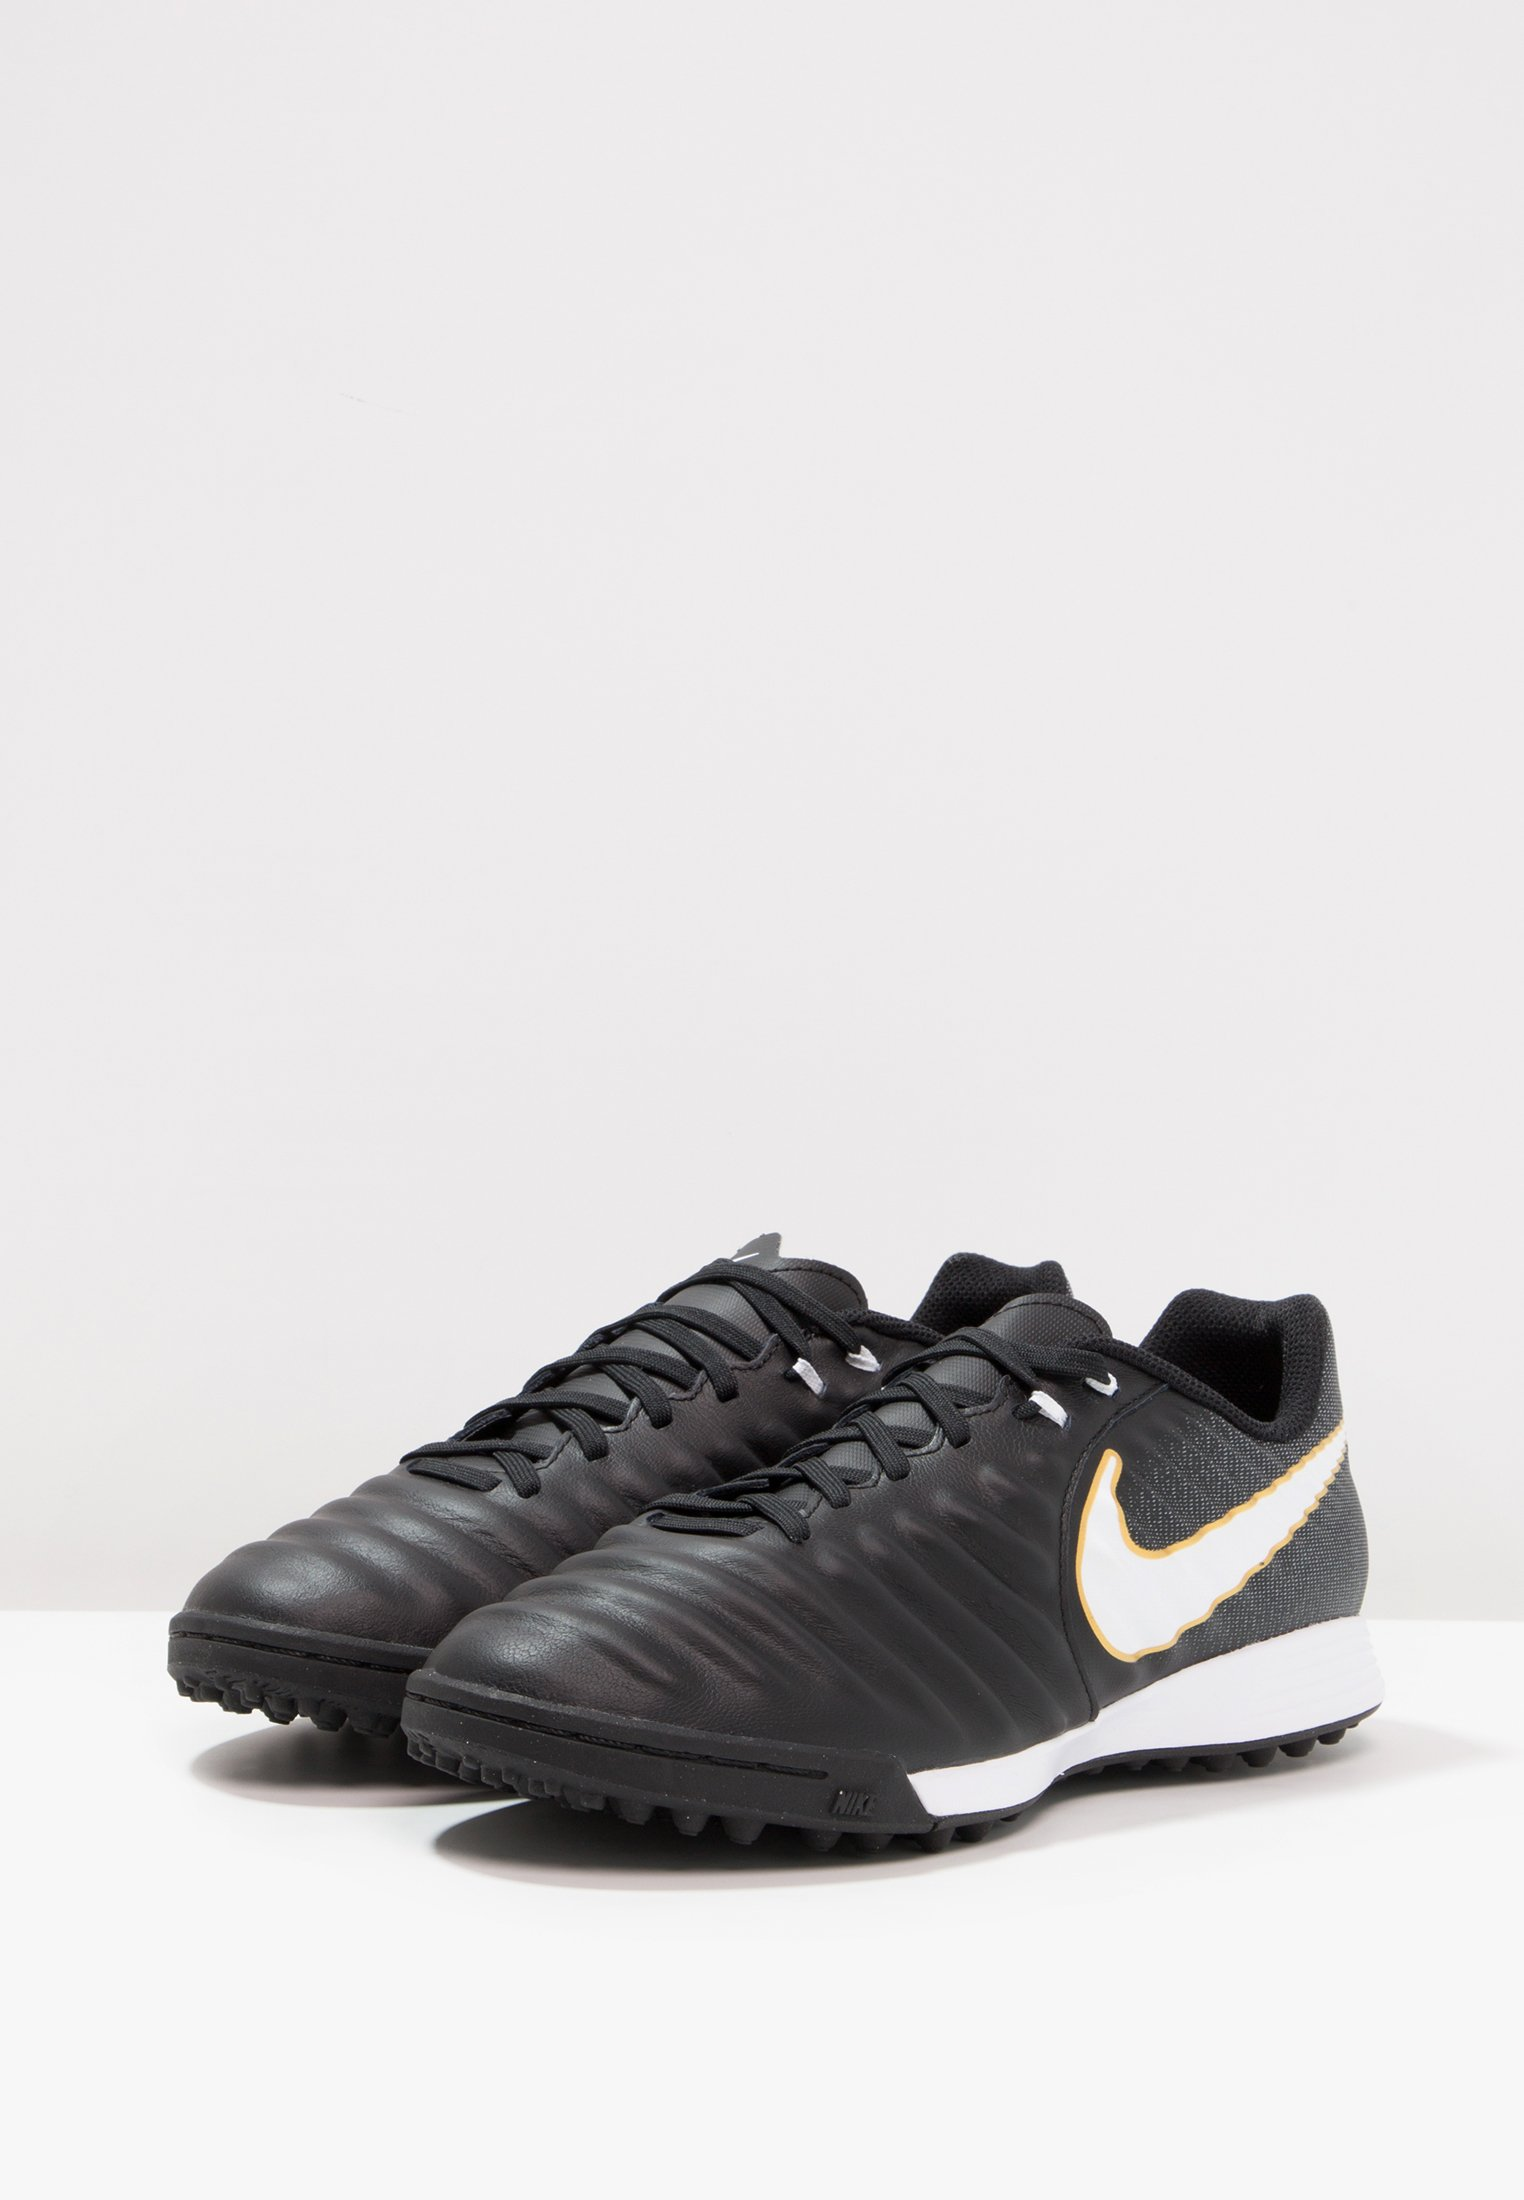 Multicrampons Nike TfChaussures Iv De Foot Black Performance white Ligera Tiempox fyY7gvb6